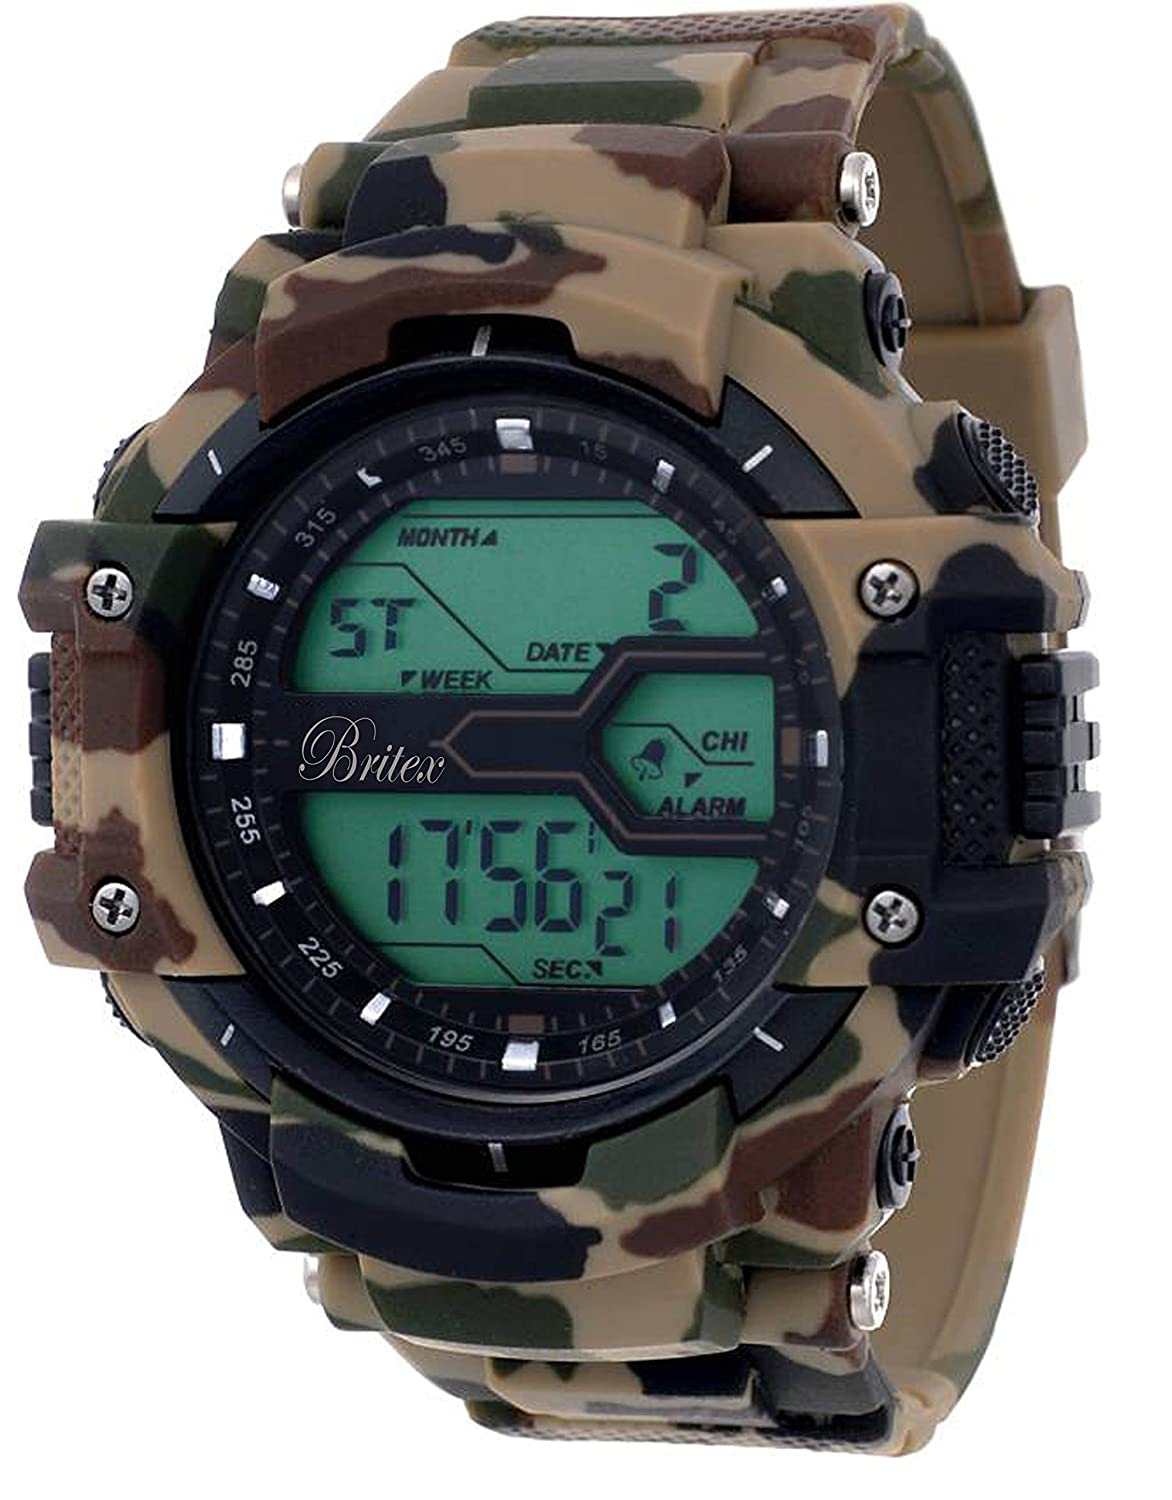 Britex Day and Date Function Digital Sports Watch For Men / Boys - BT6190